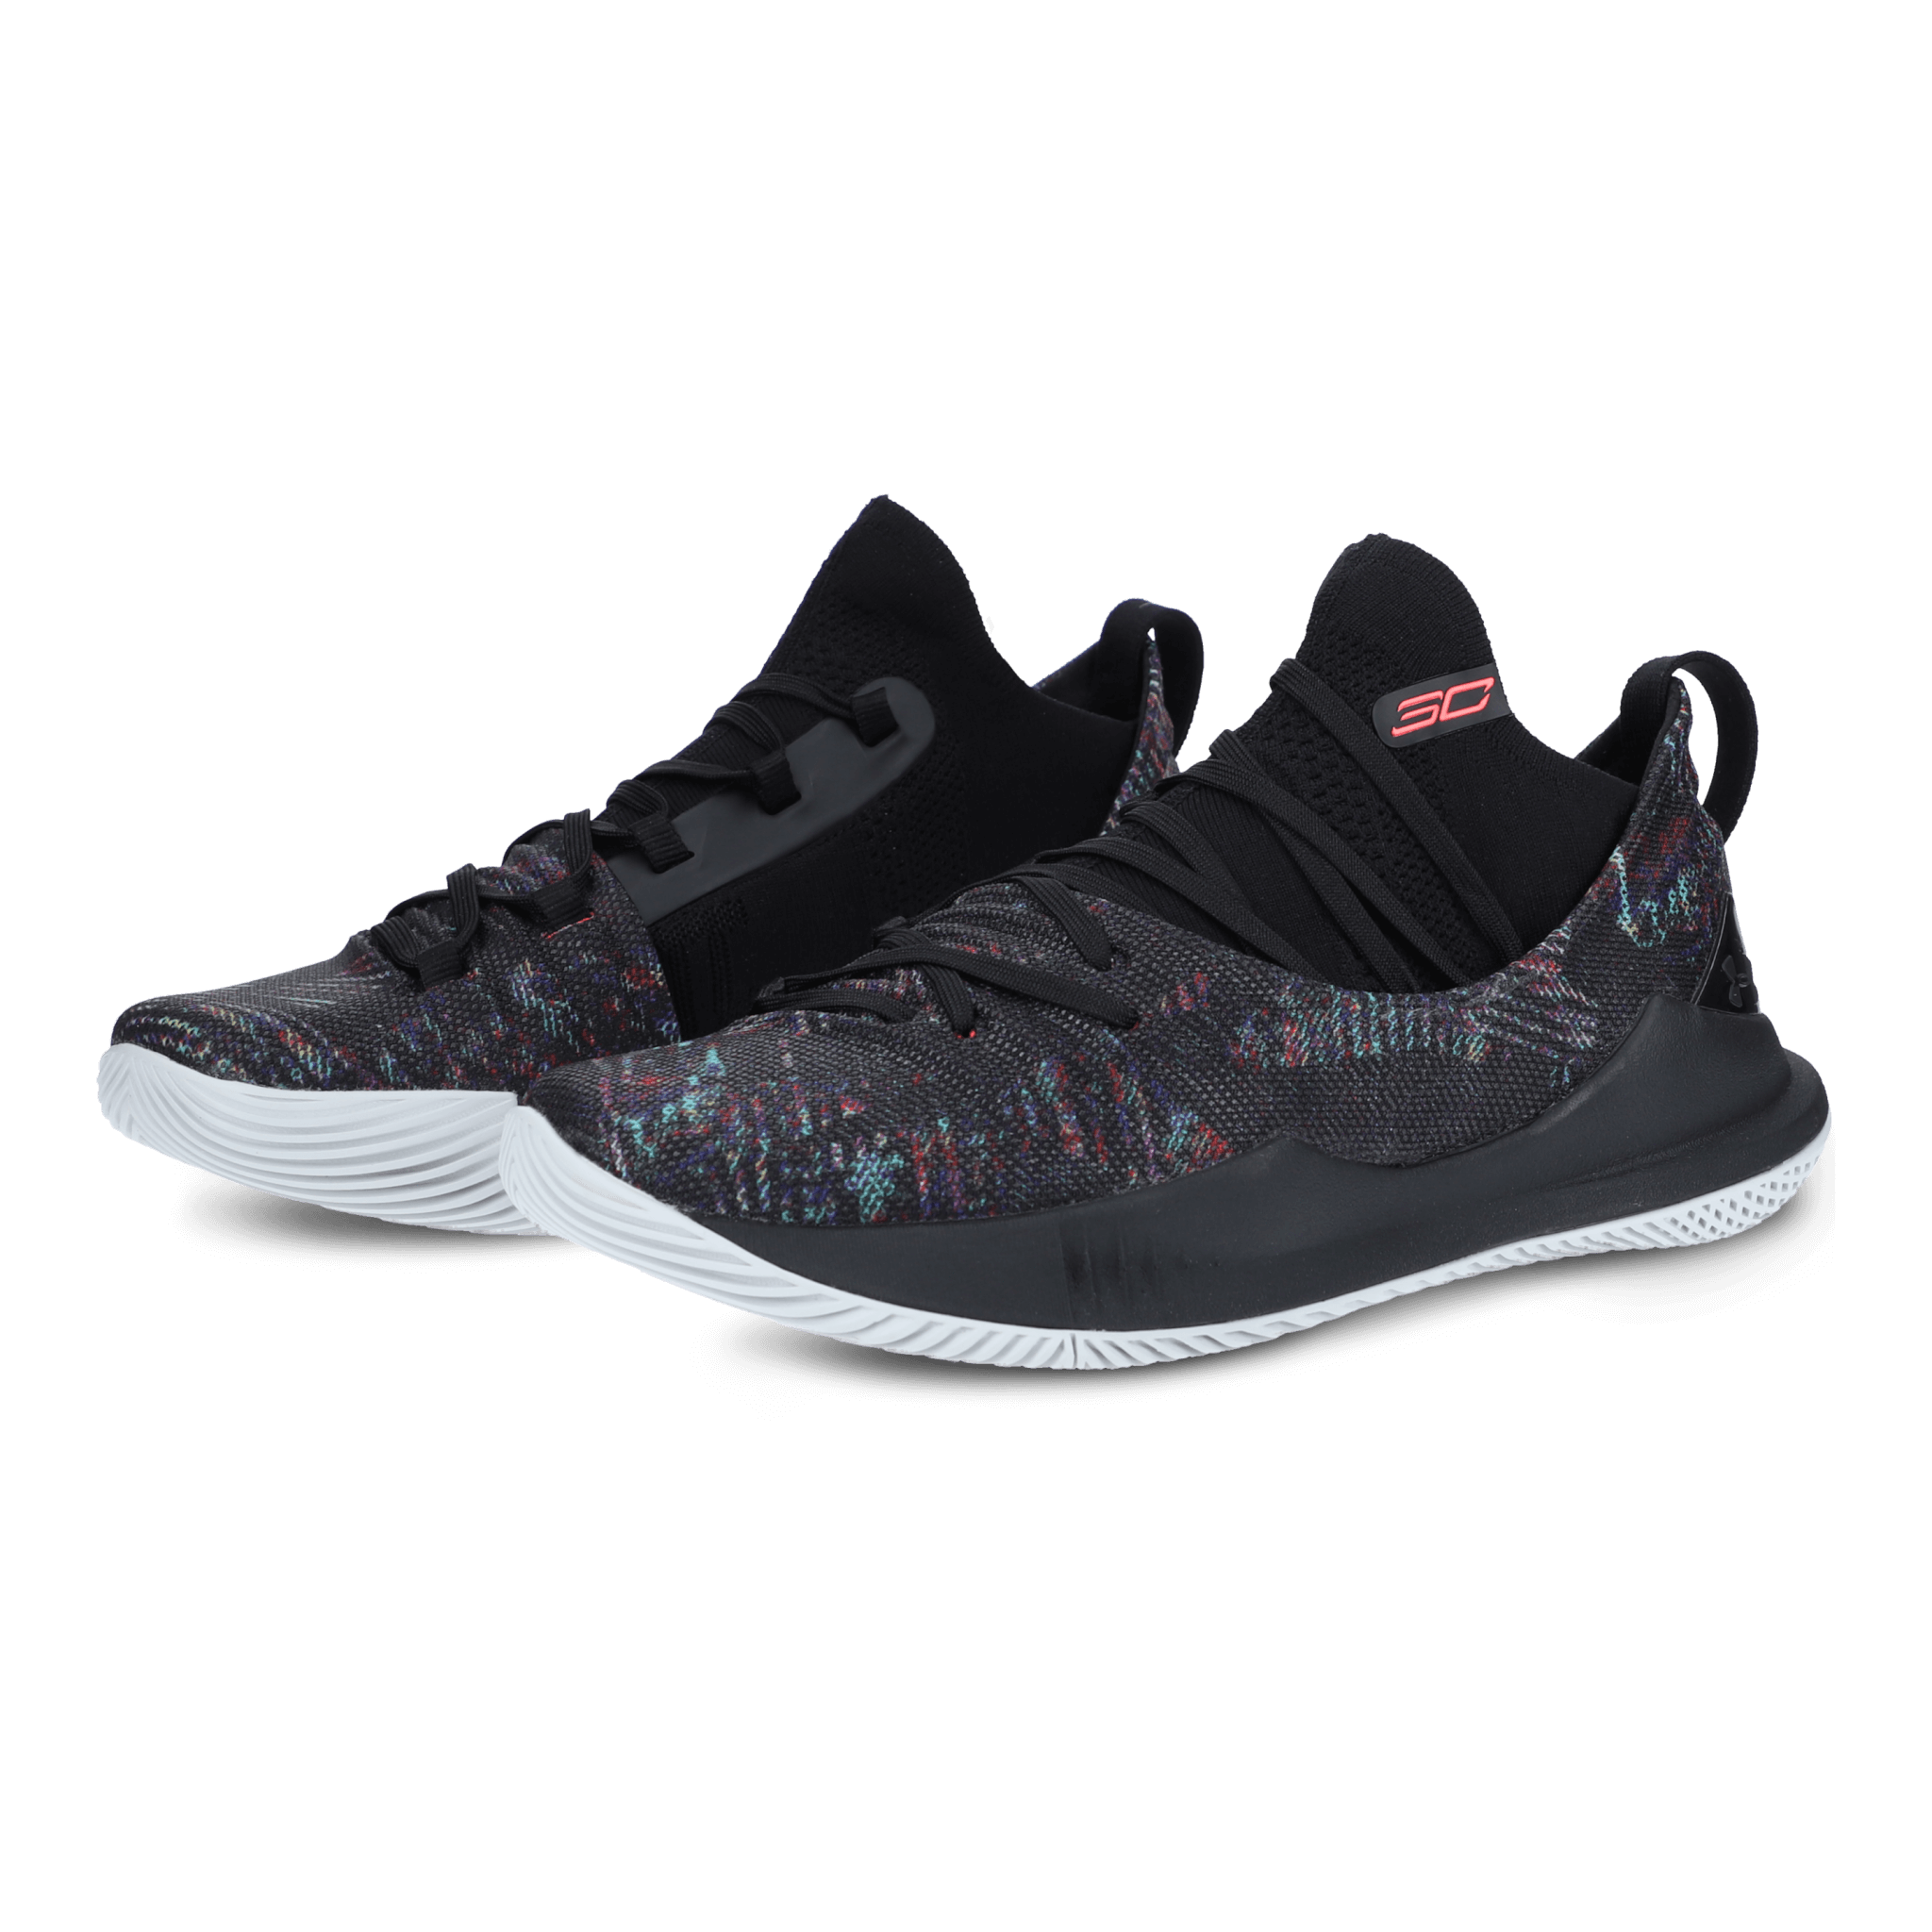 25229f70597a Under Armour Curry 5 Performance Review